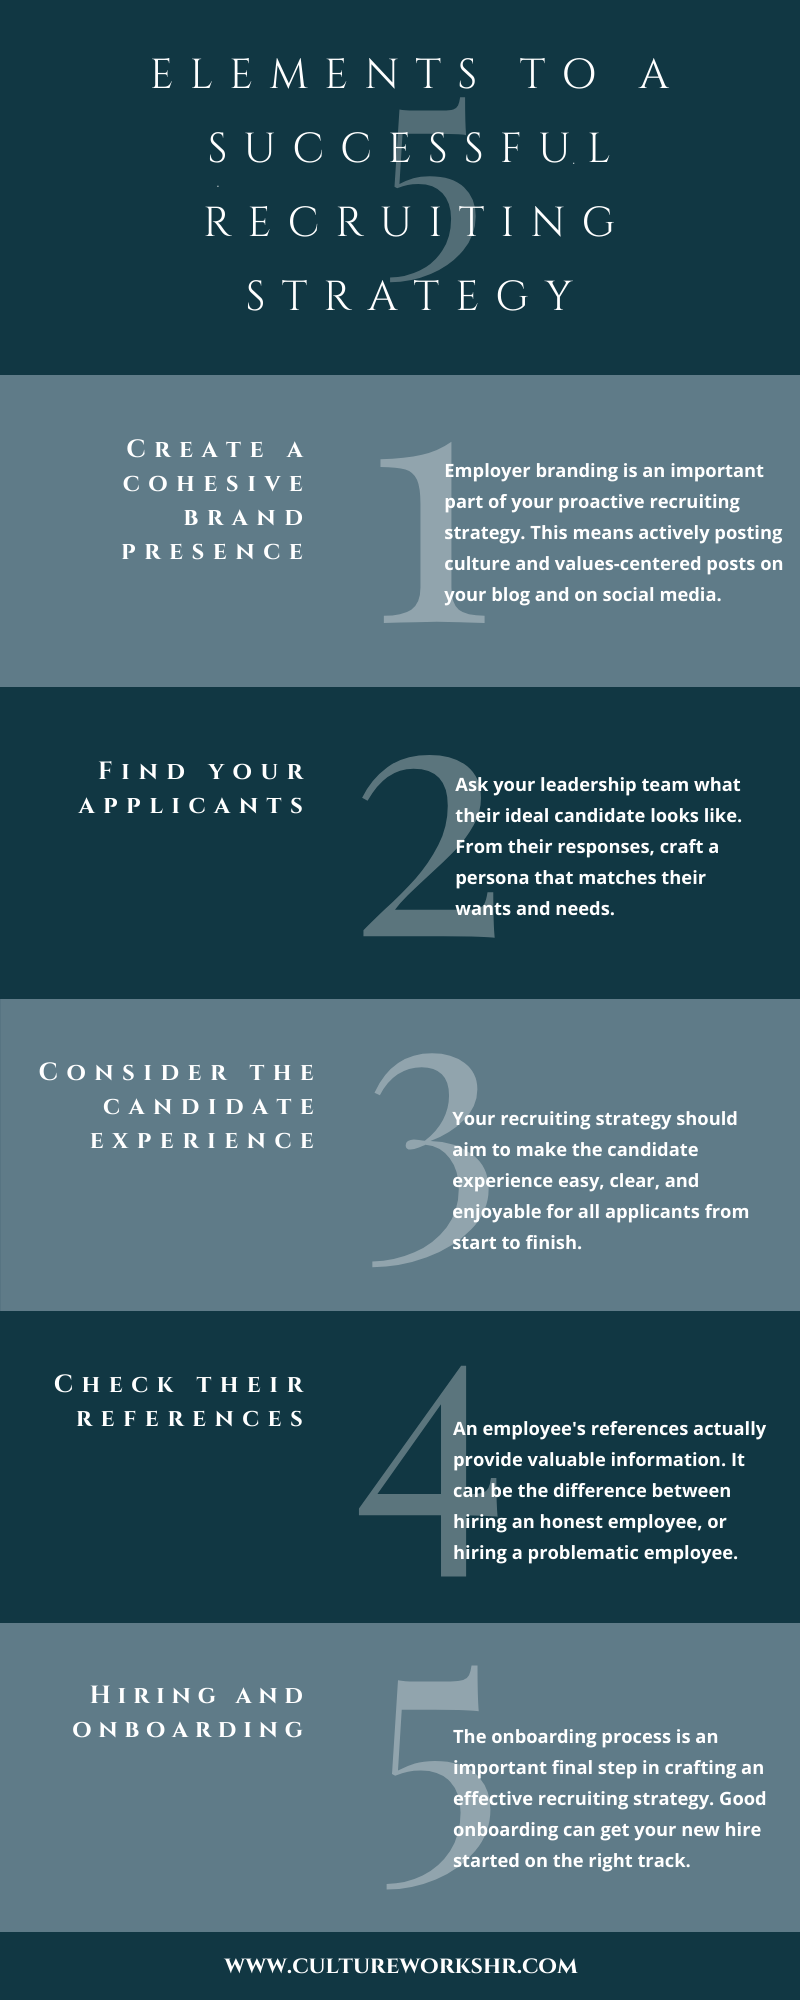 What Are the Elements of a Successful Recruiting Strategy